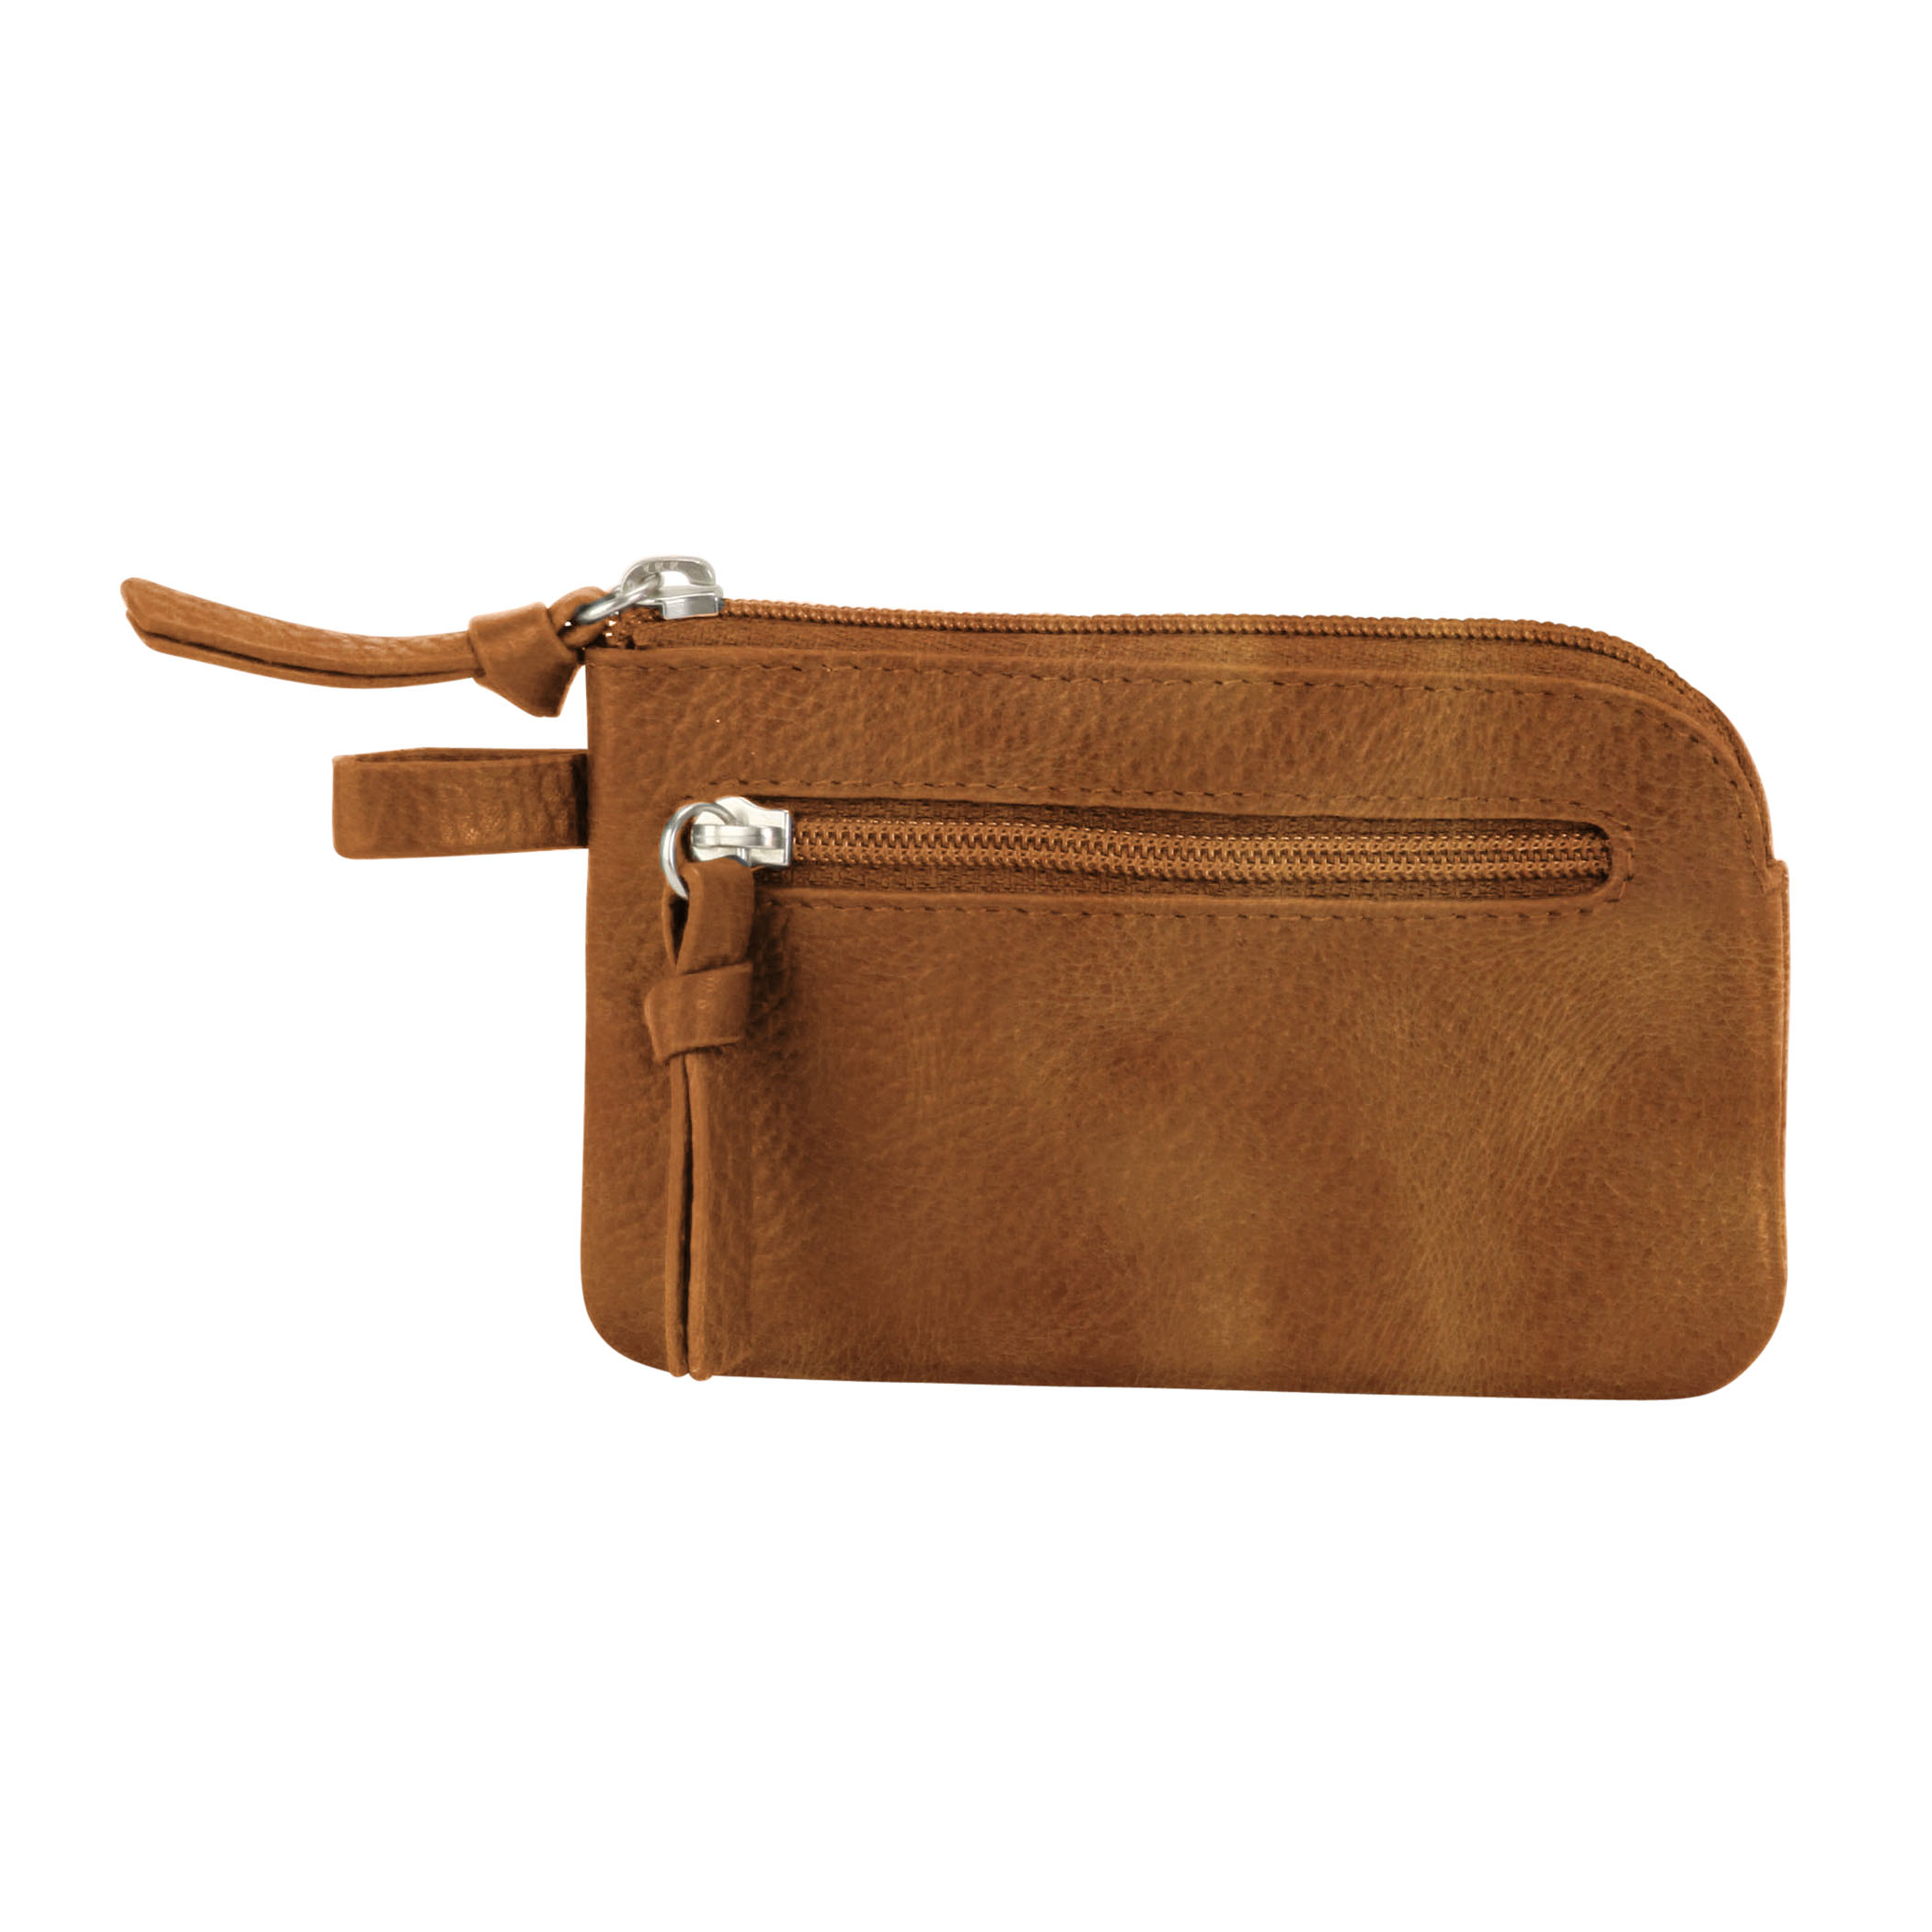 Key Pouch - Distressed Sand